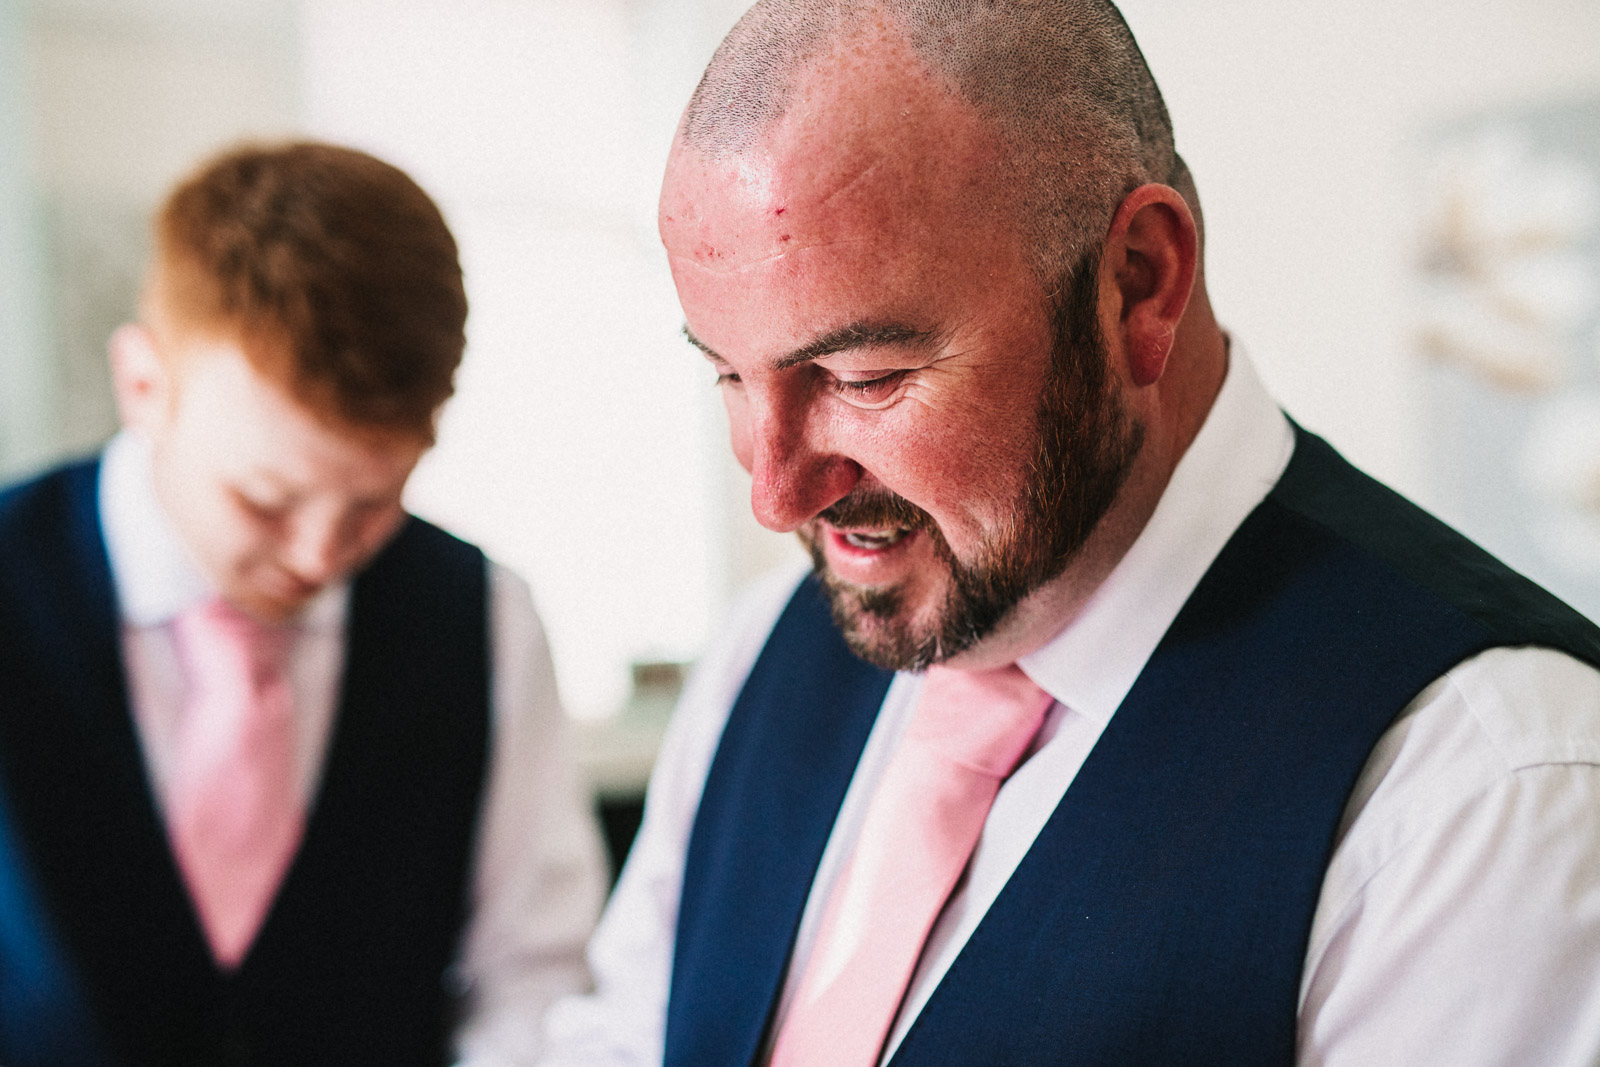 kilhey-court-hotel-wedding-16